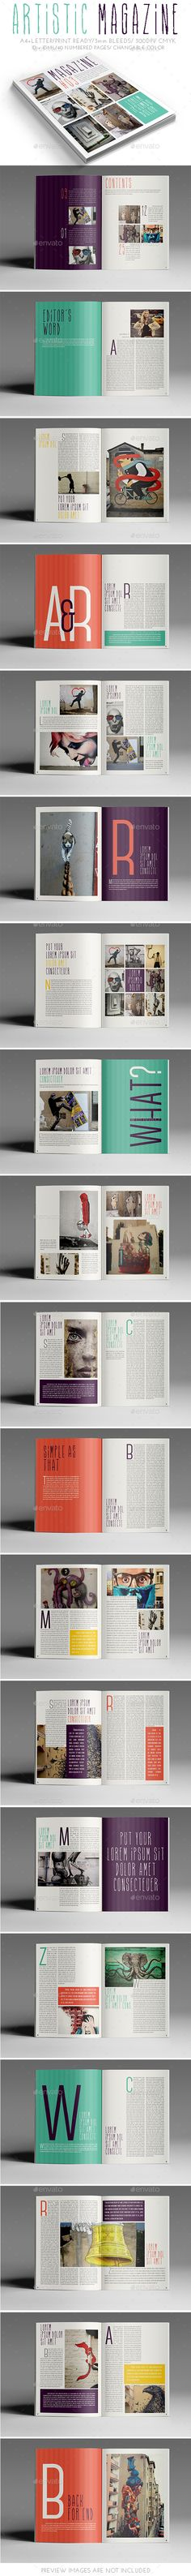 Artistic Magazine — InDesign INDD #clean #modern • Available here → https://graphicriver.net/item/artistic-magazine/9764394?ref=pxcr